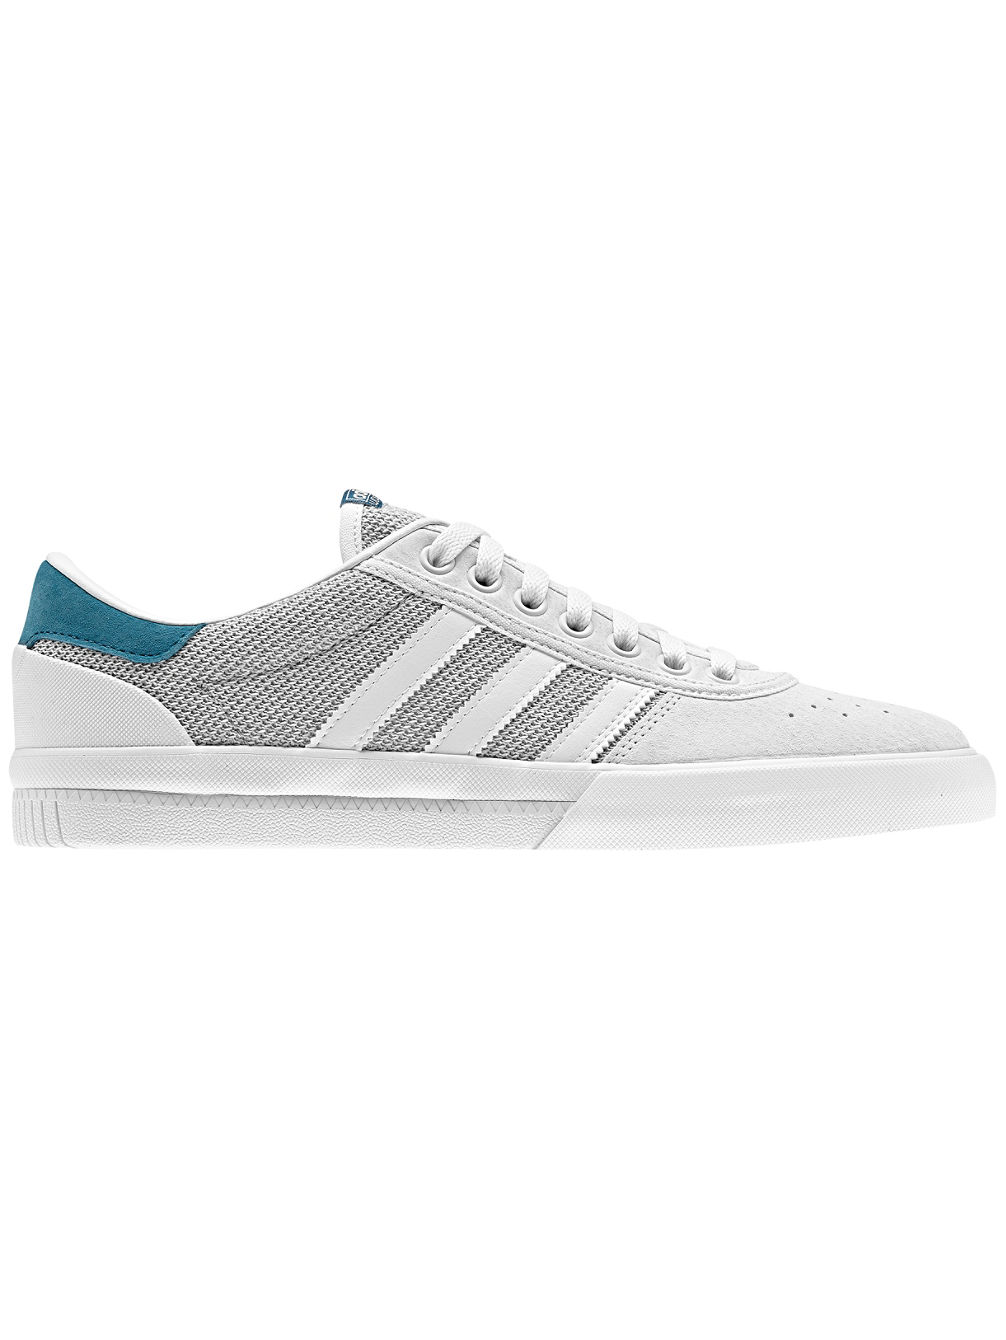 finest selection f5b85 30416 Buy adidas Skateboarding Lucas Premiere Skate Shoes online at Blue Tomato